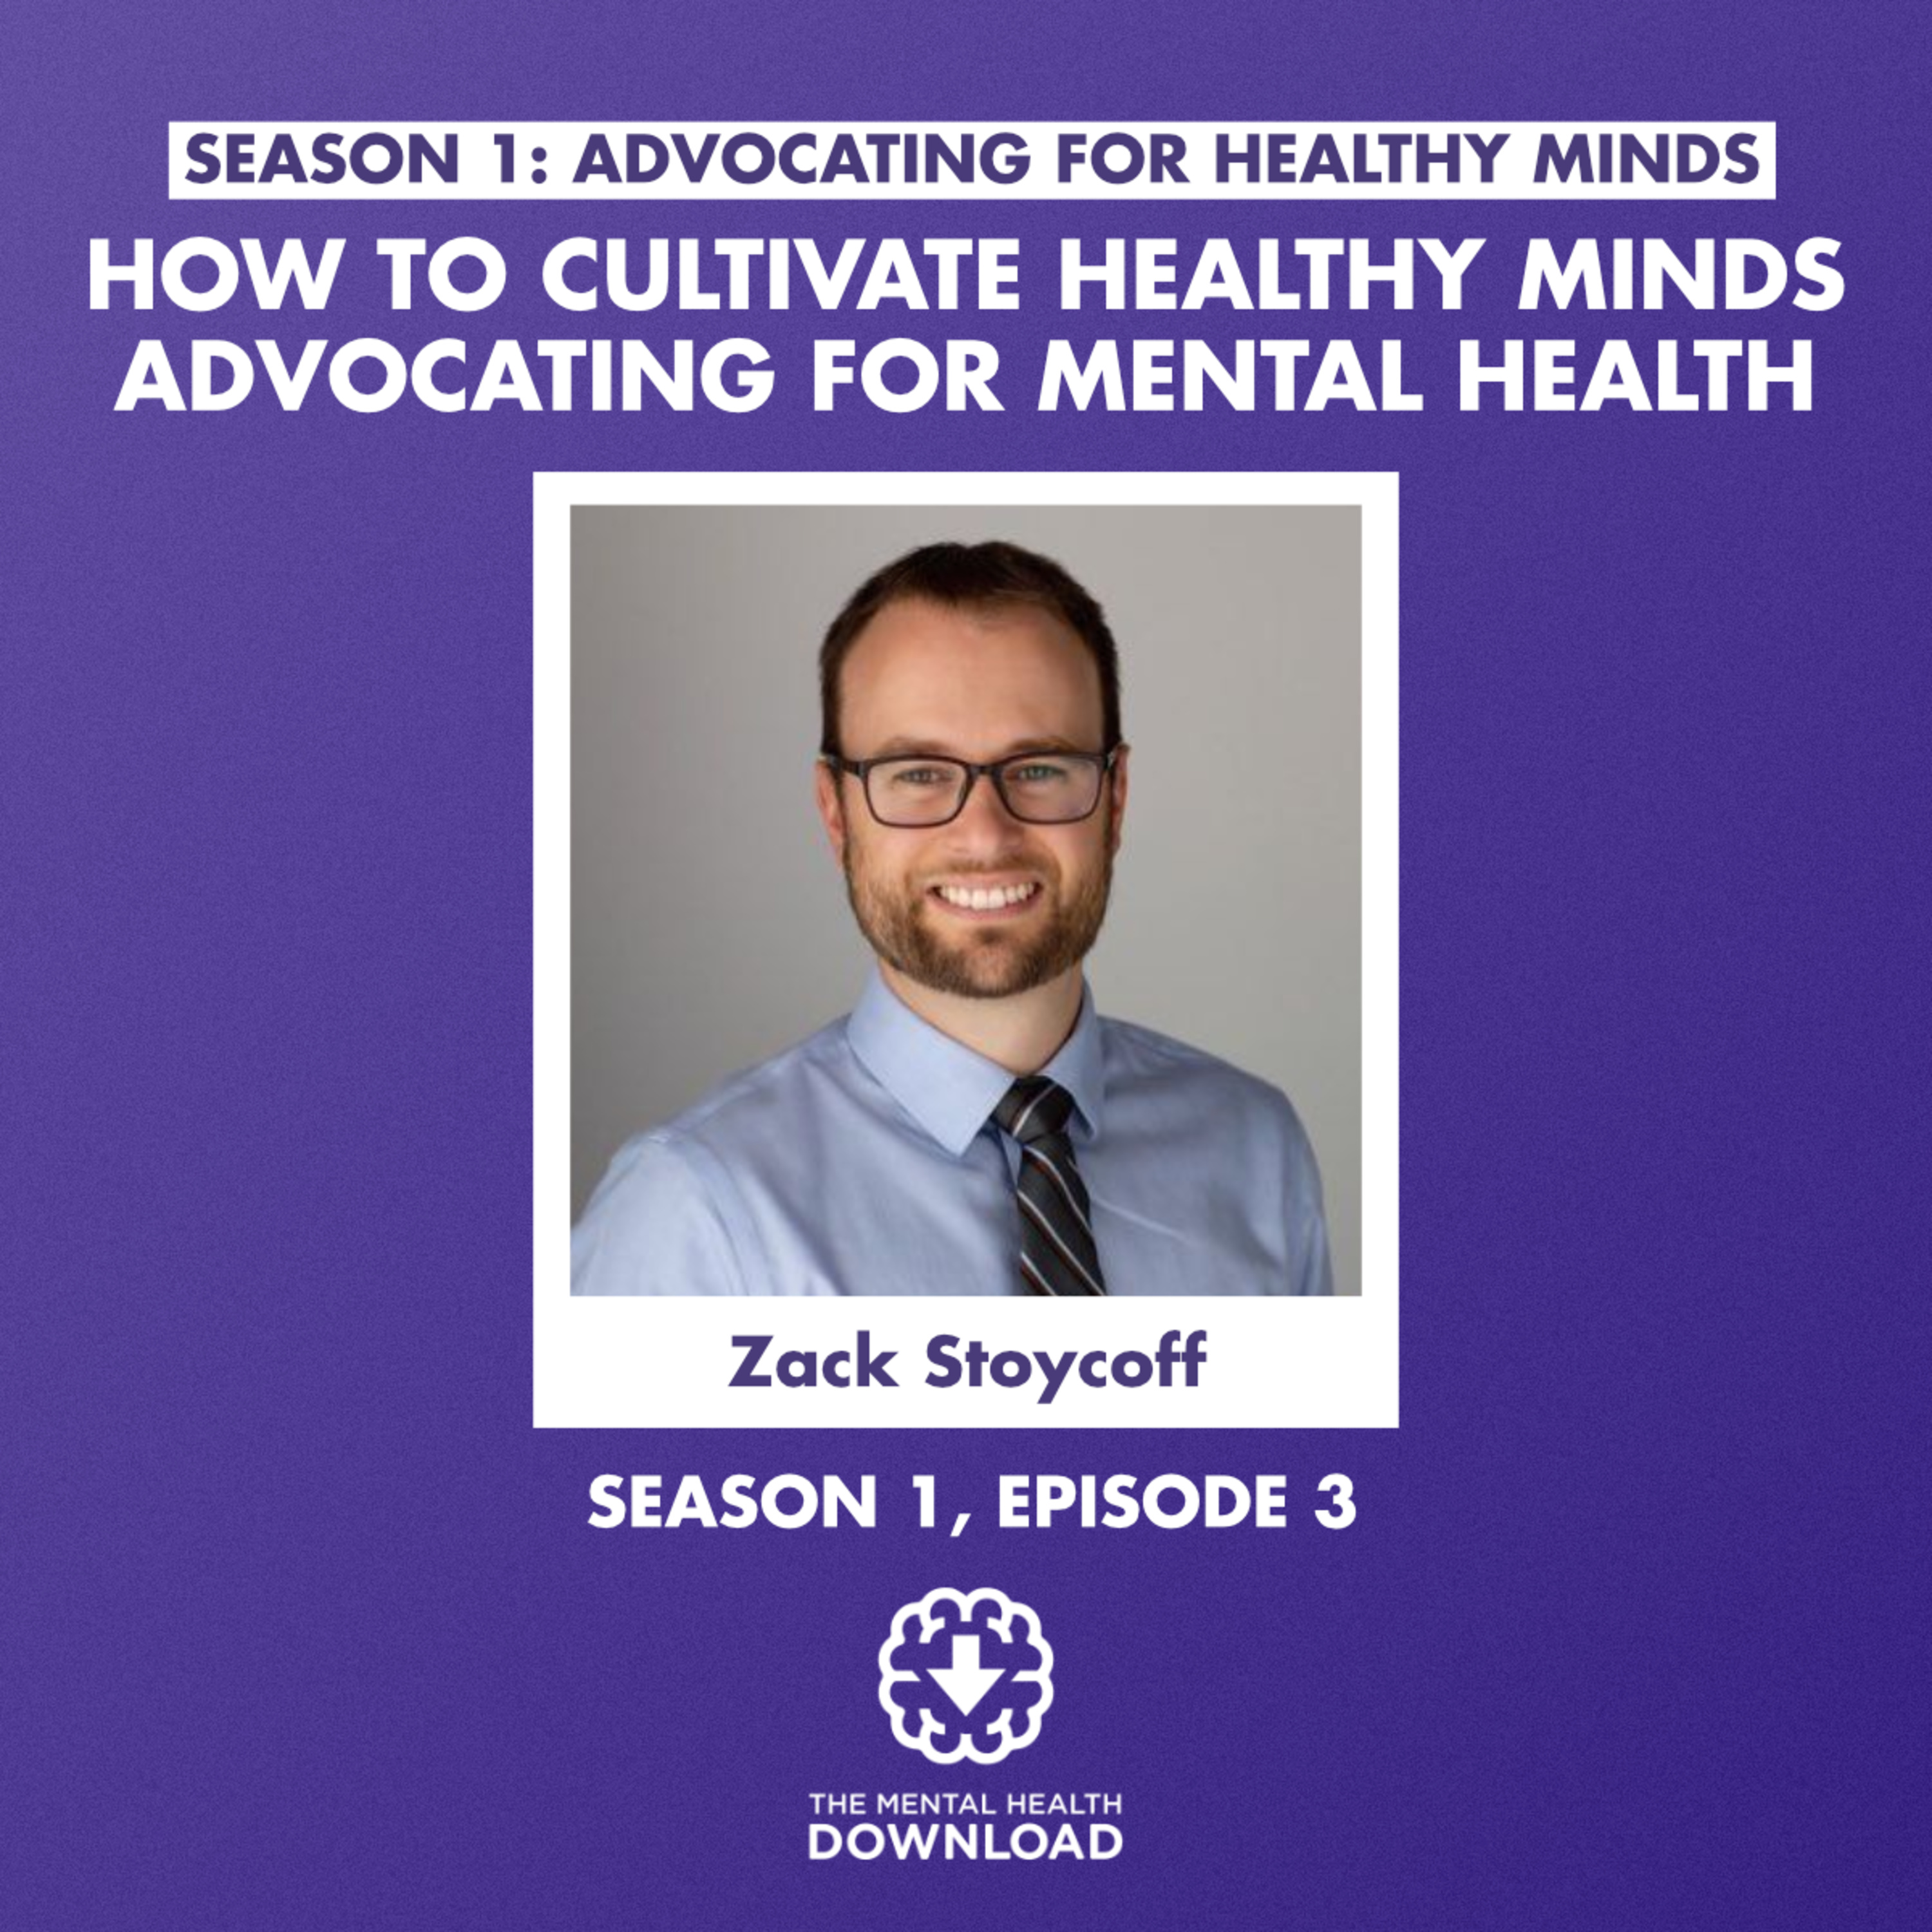 Mental Health Download: Exploring Mental Illness, Suicide, Homelessness and Incarceration - Zack Stoycoff: Cultivate Healthy Minds Through Advocacy